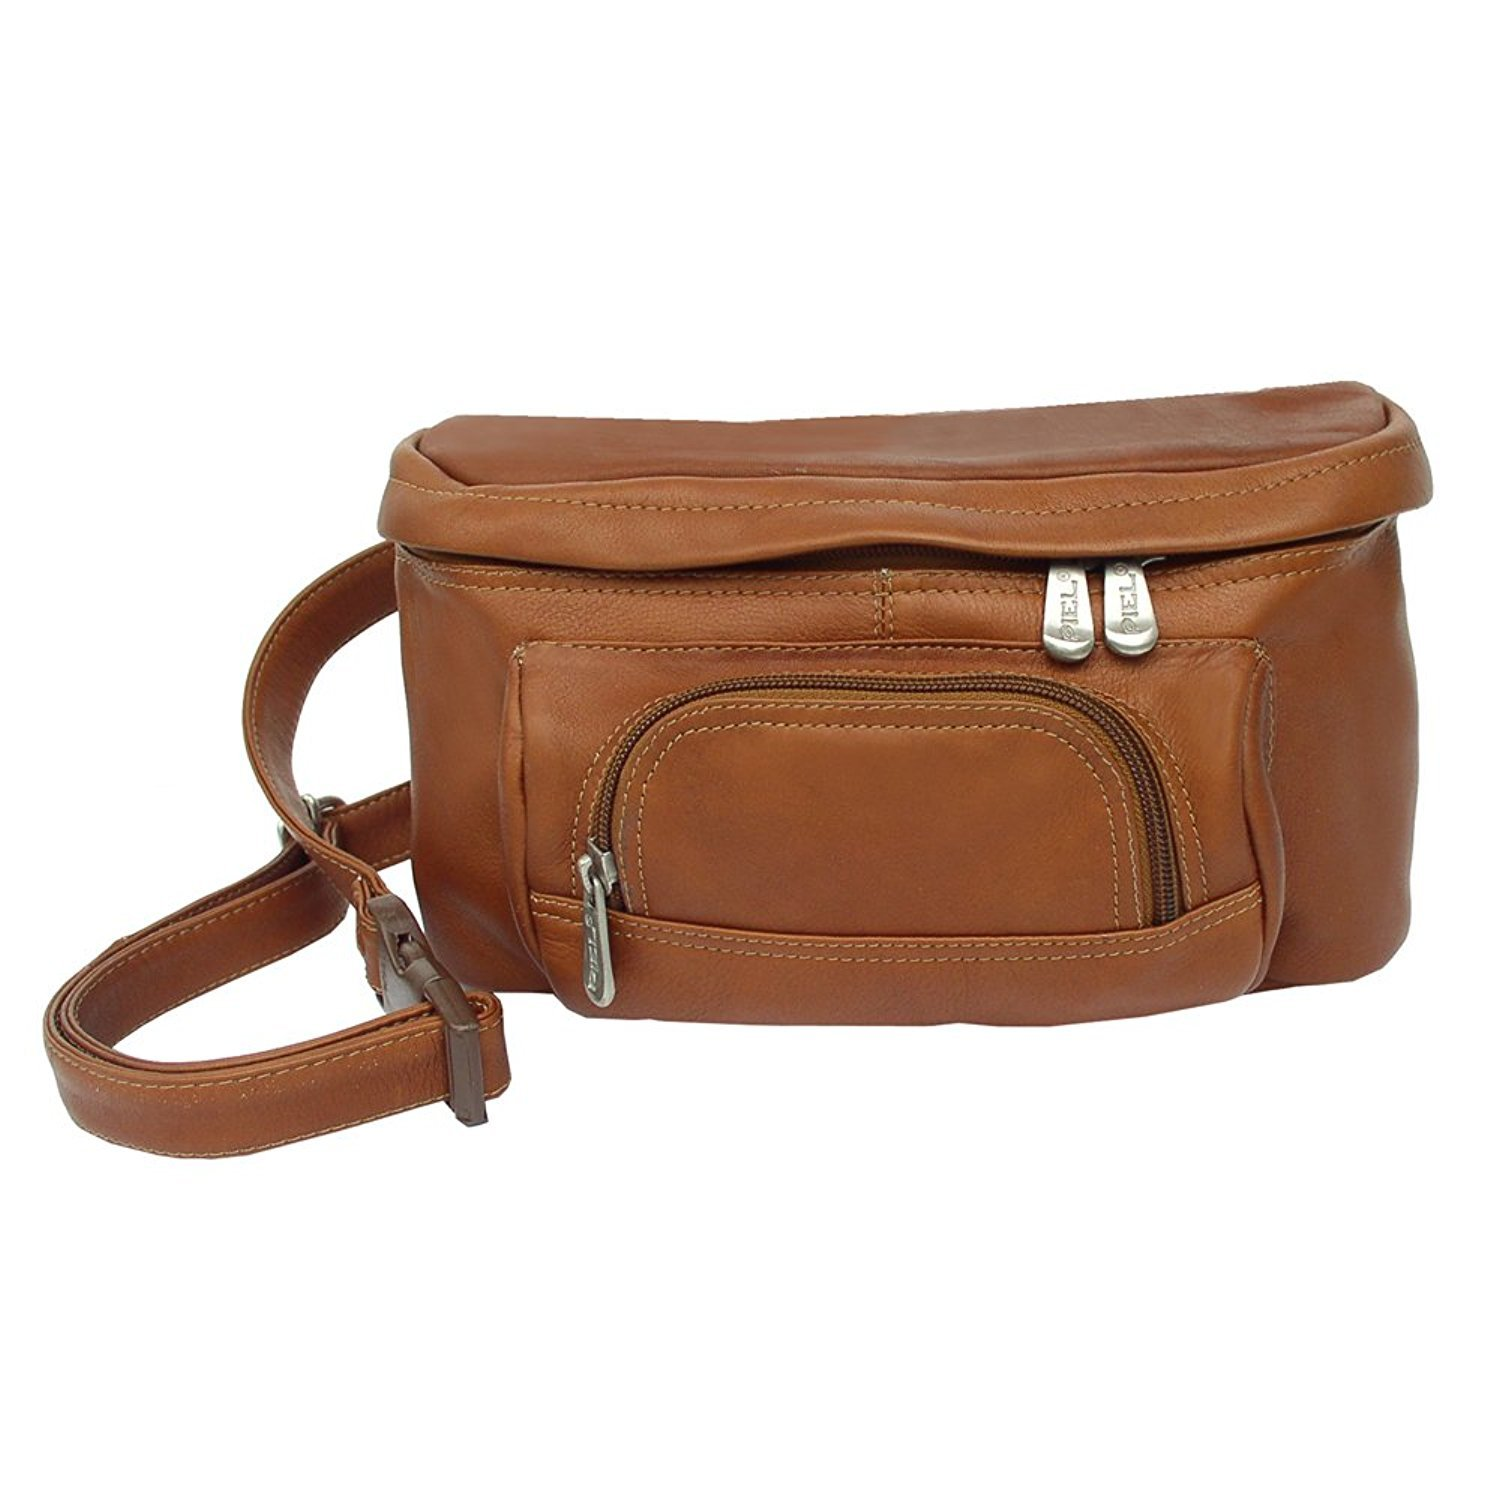 Piel Leather Carry-All Waist Bag Saddle One Size [並行輸入品] B077QRCNXQ